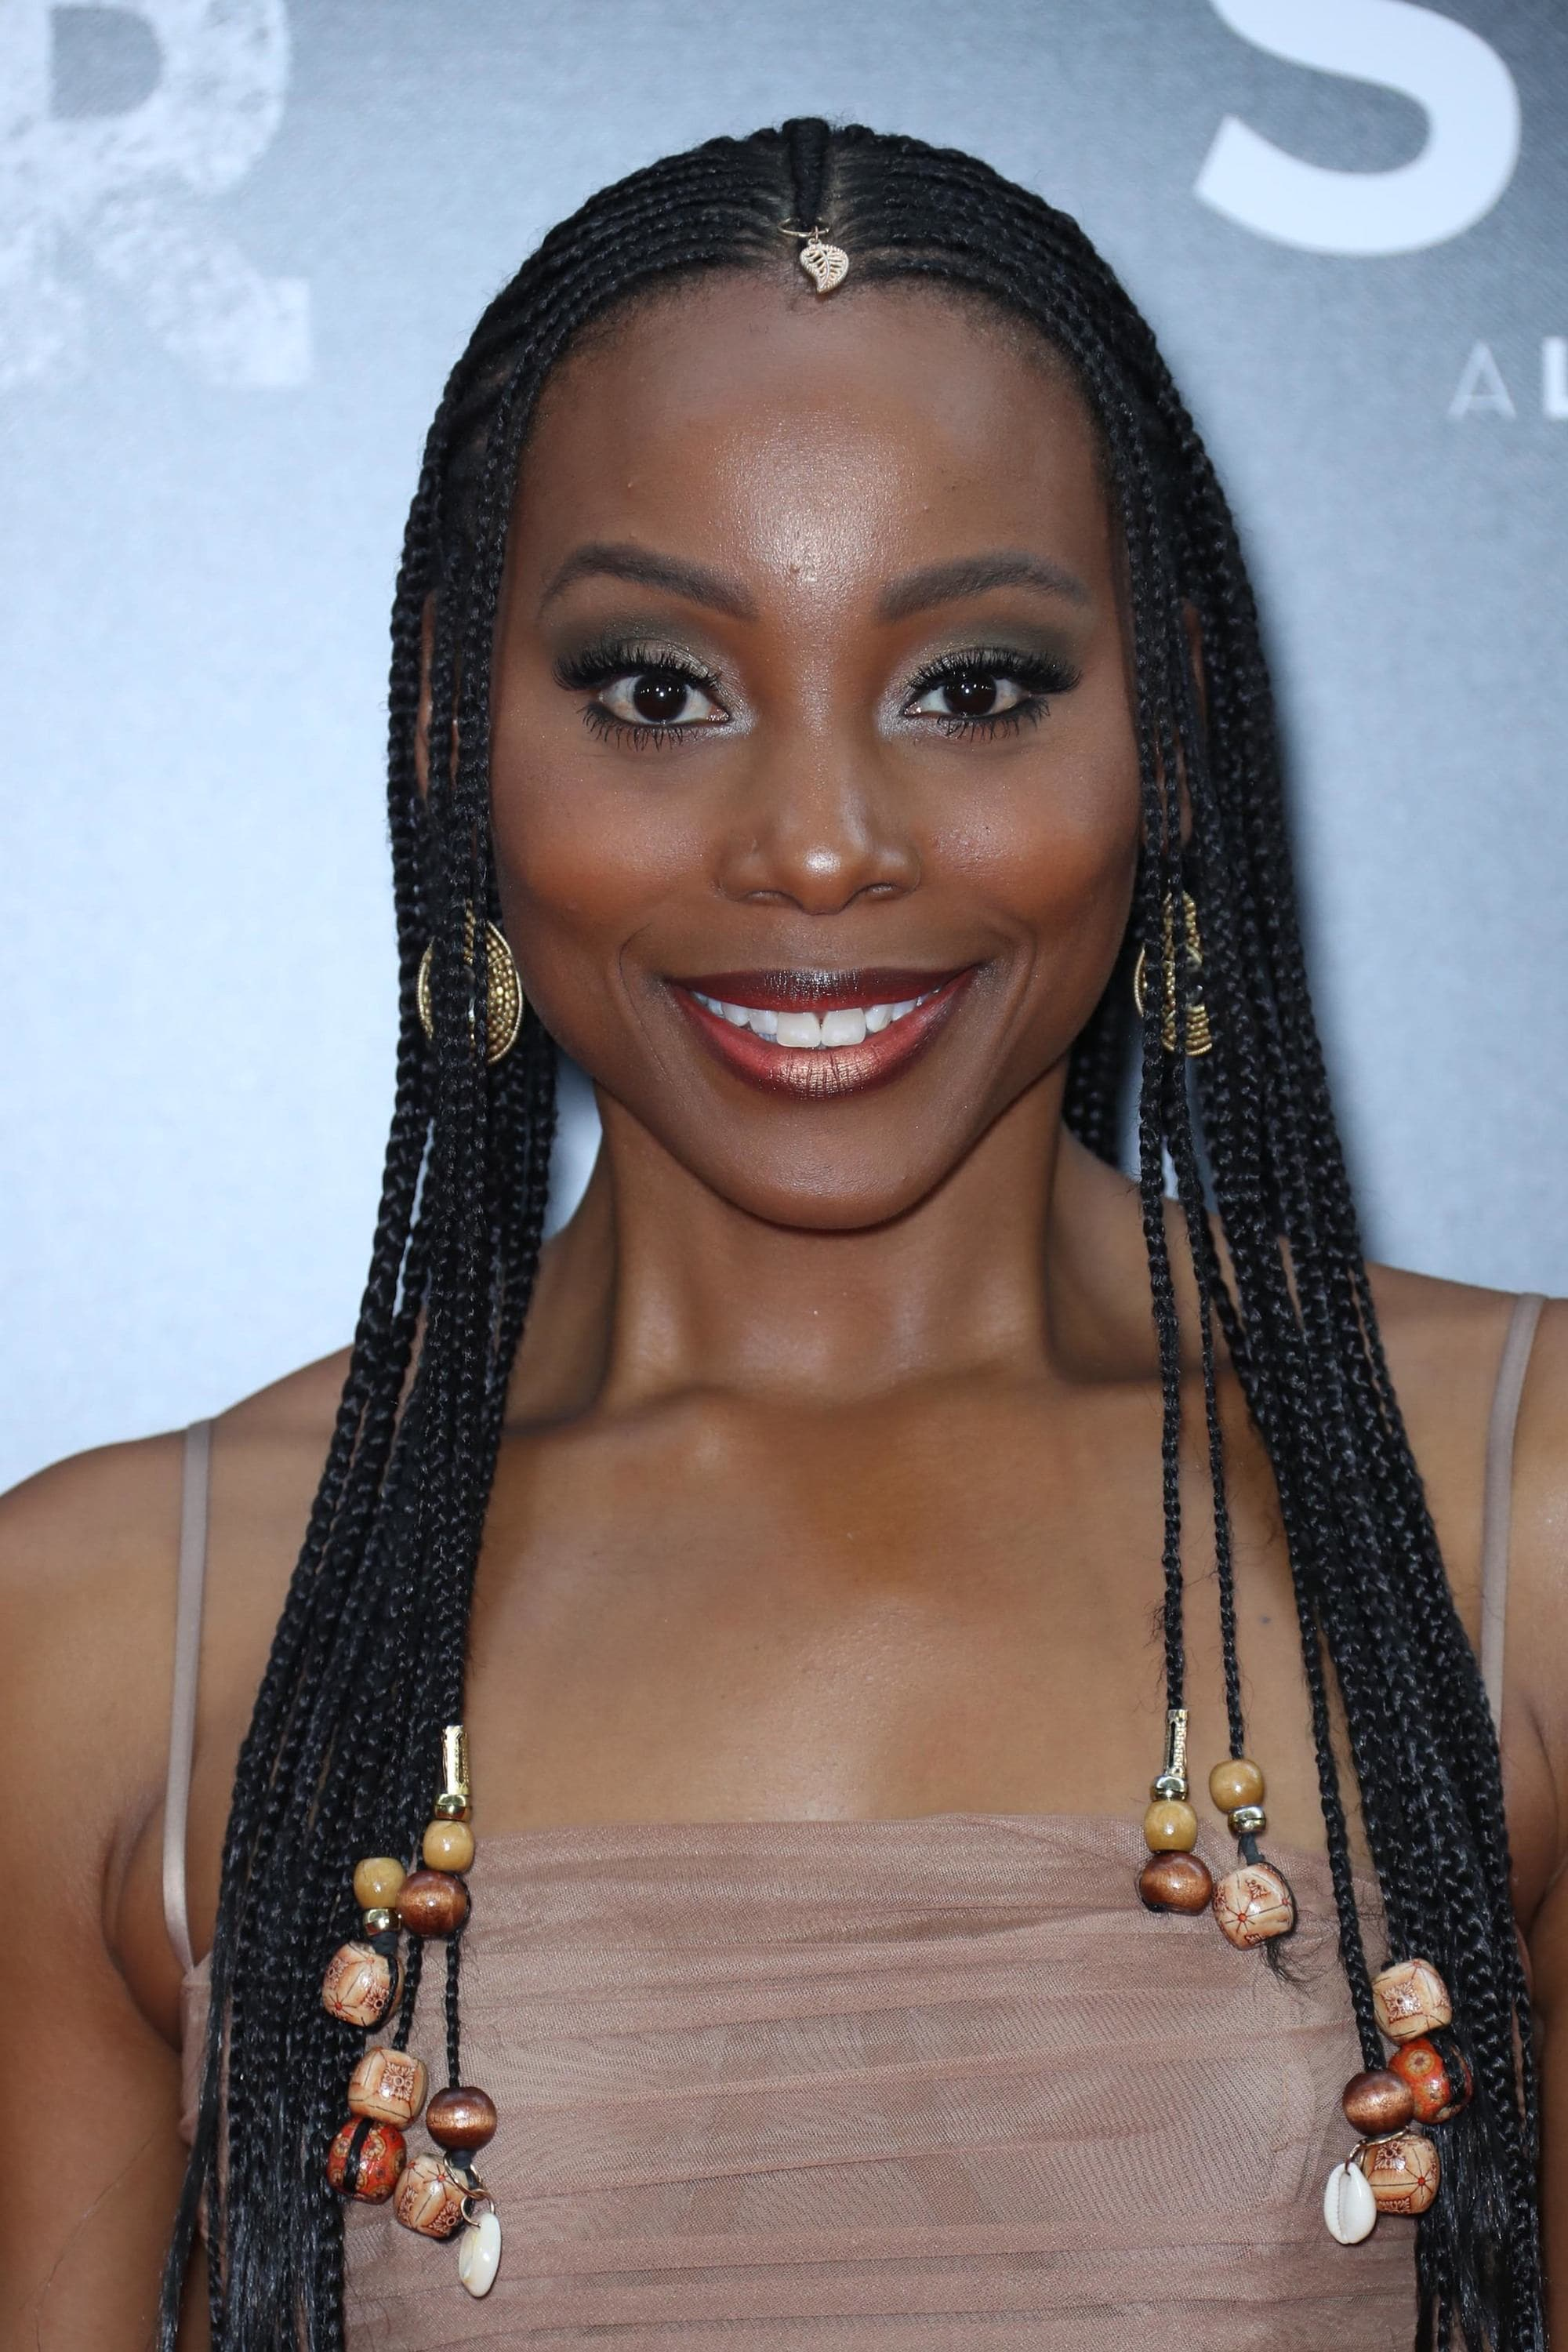 Black history month hairstyles: Close up shot of Erica Ash with dark brown cornrows with beads on the ends, wearing a brown top and posing on the red carpet